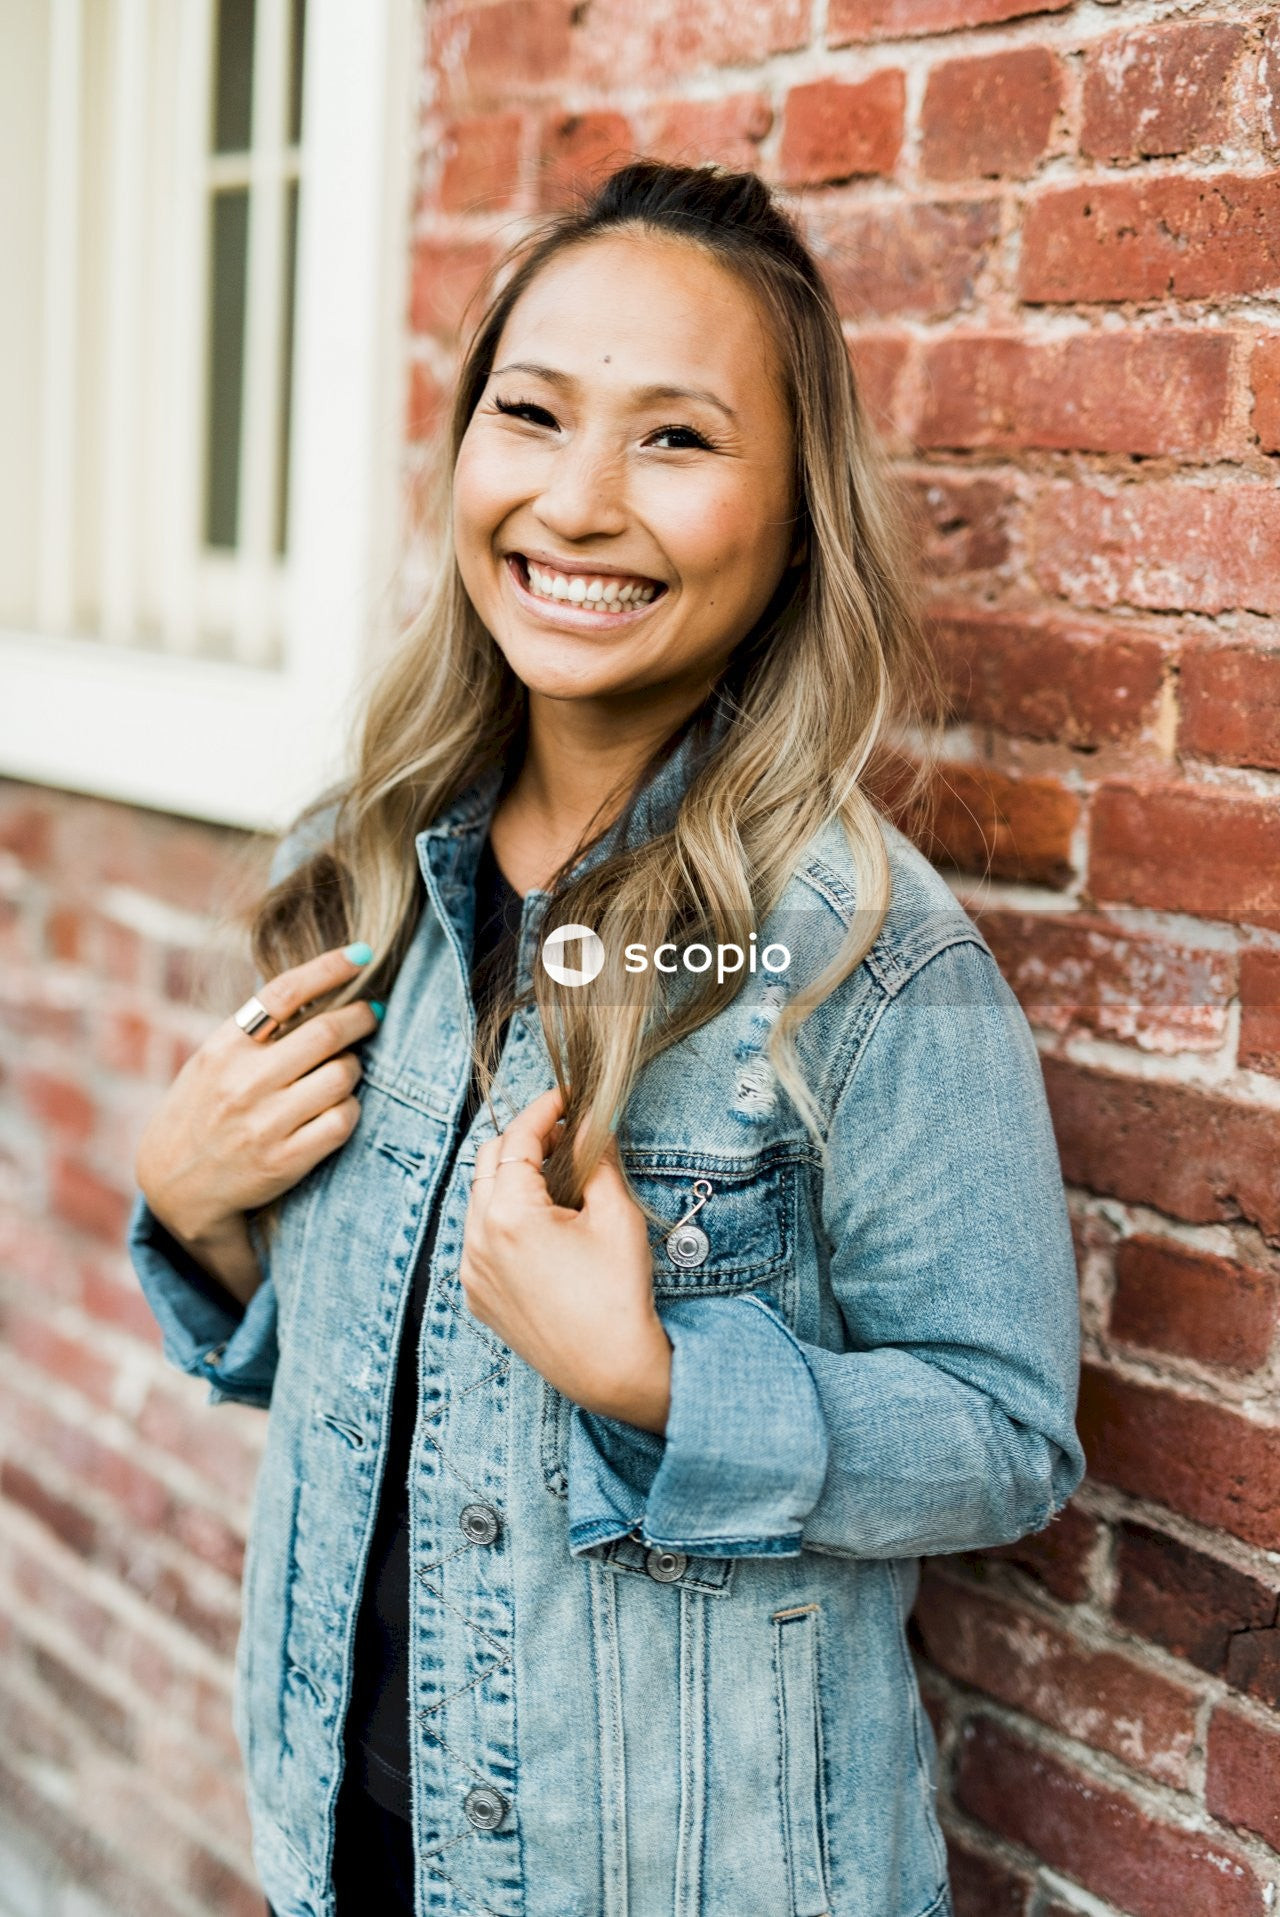 Smiling woman in blue denim jacket